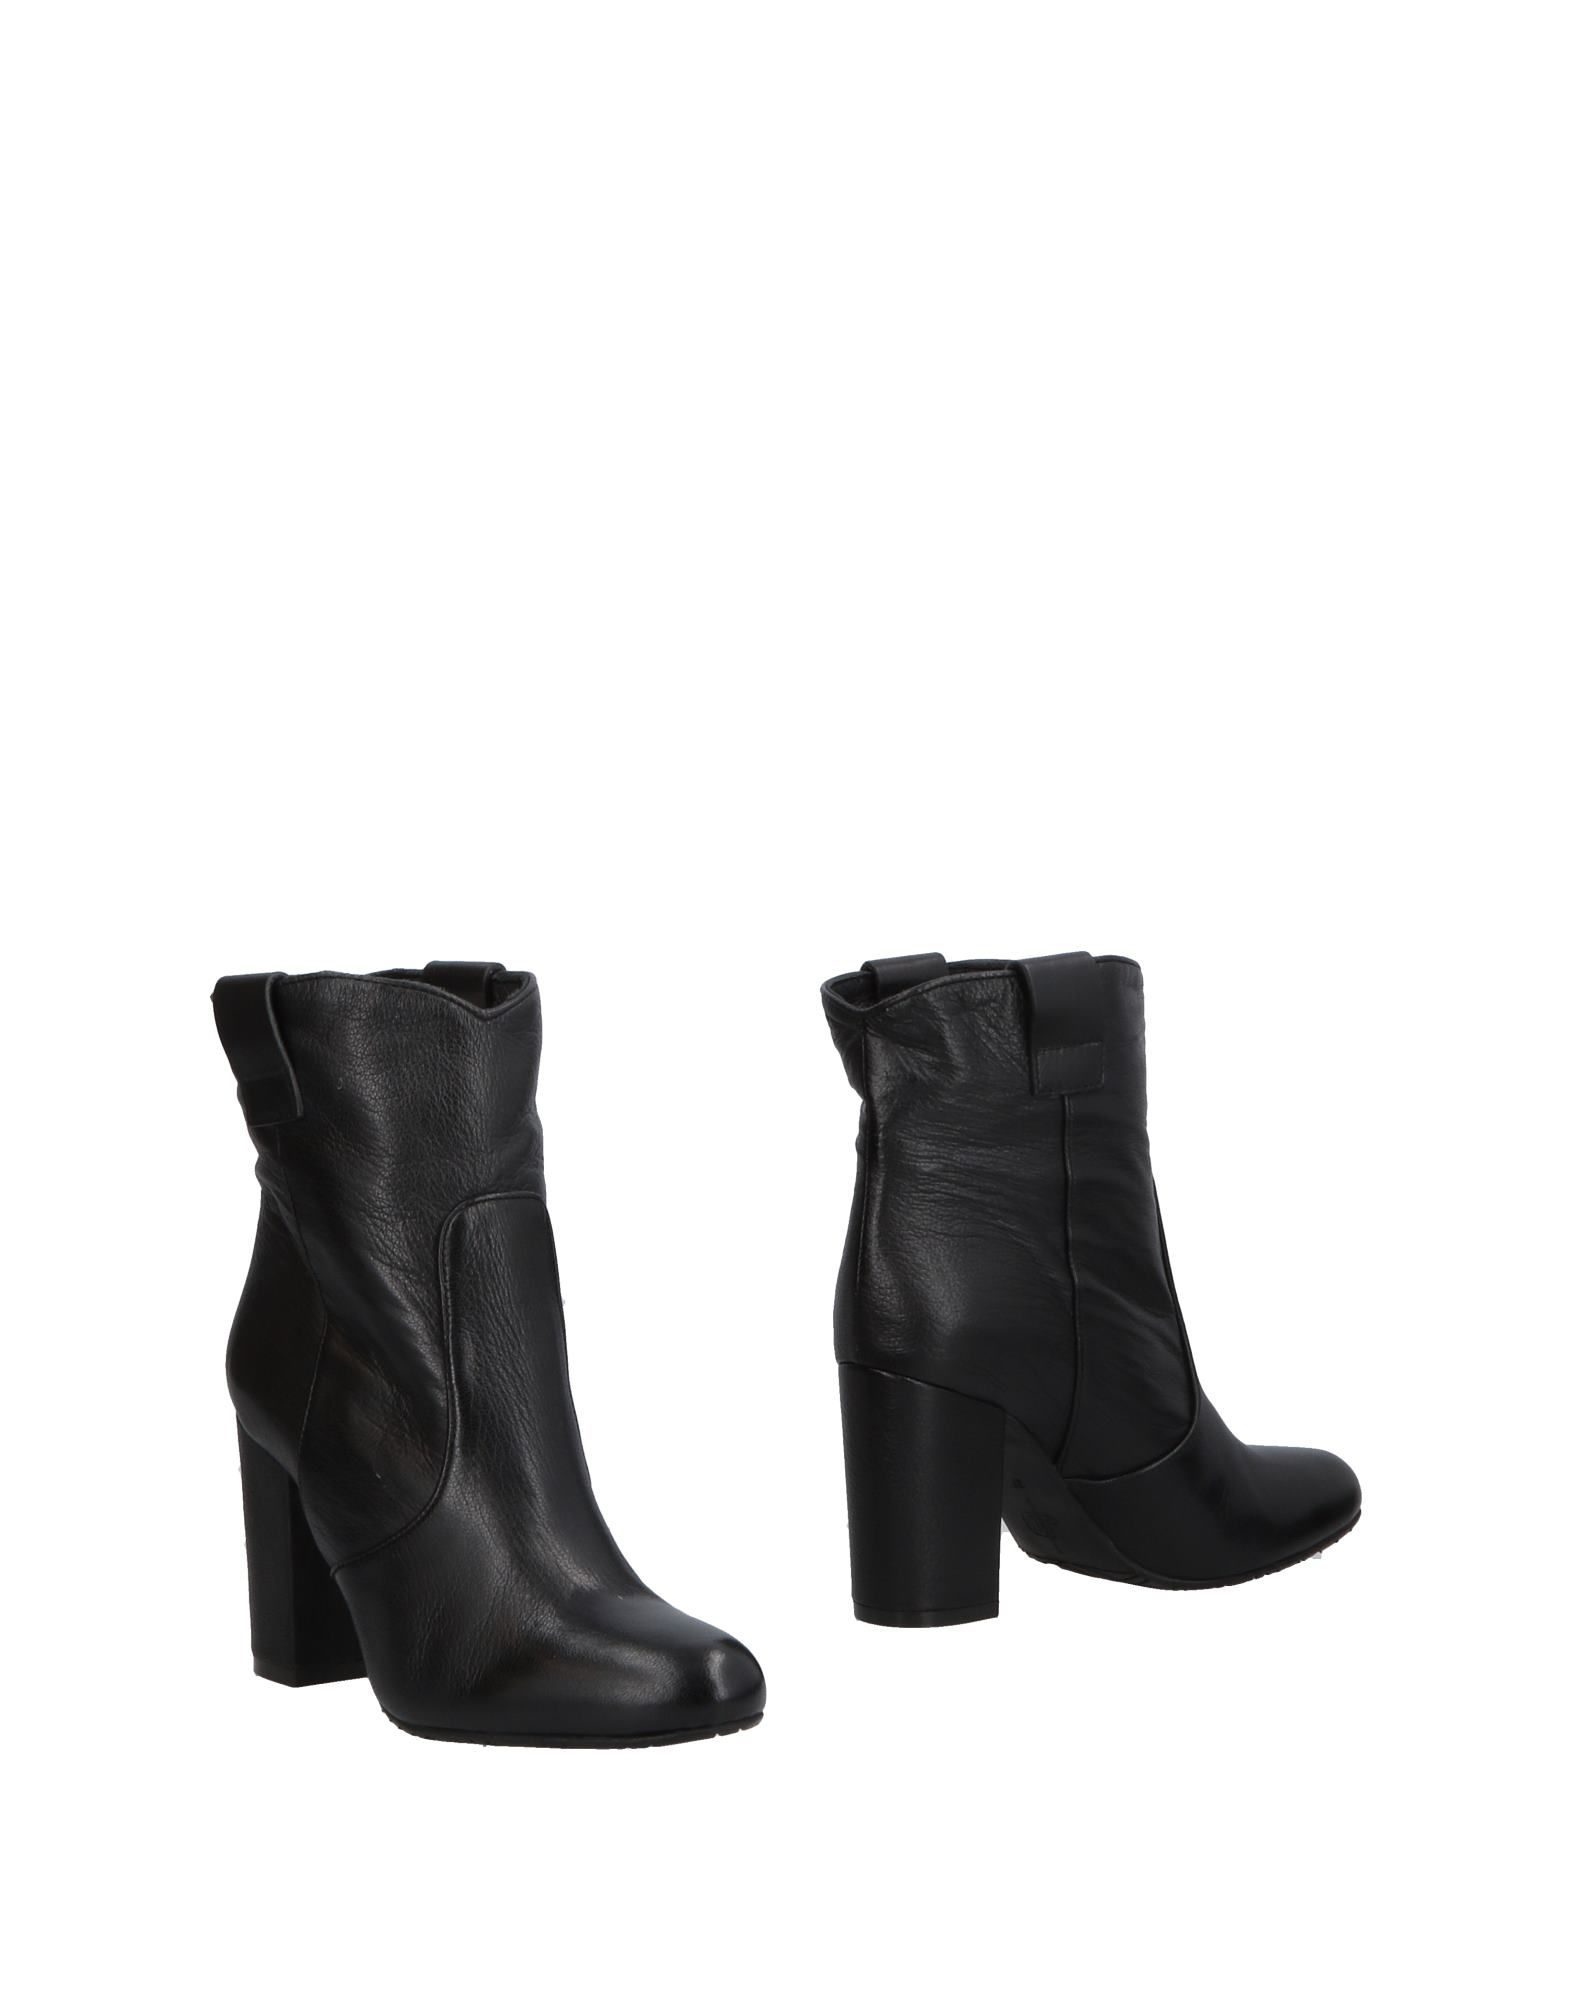 J|D Julie Dee Ankle Boot - Women Boots J|D Julie Dee Ankle Boots Women online on  United Kingdom - 11508456HH a18fe8